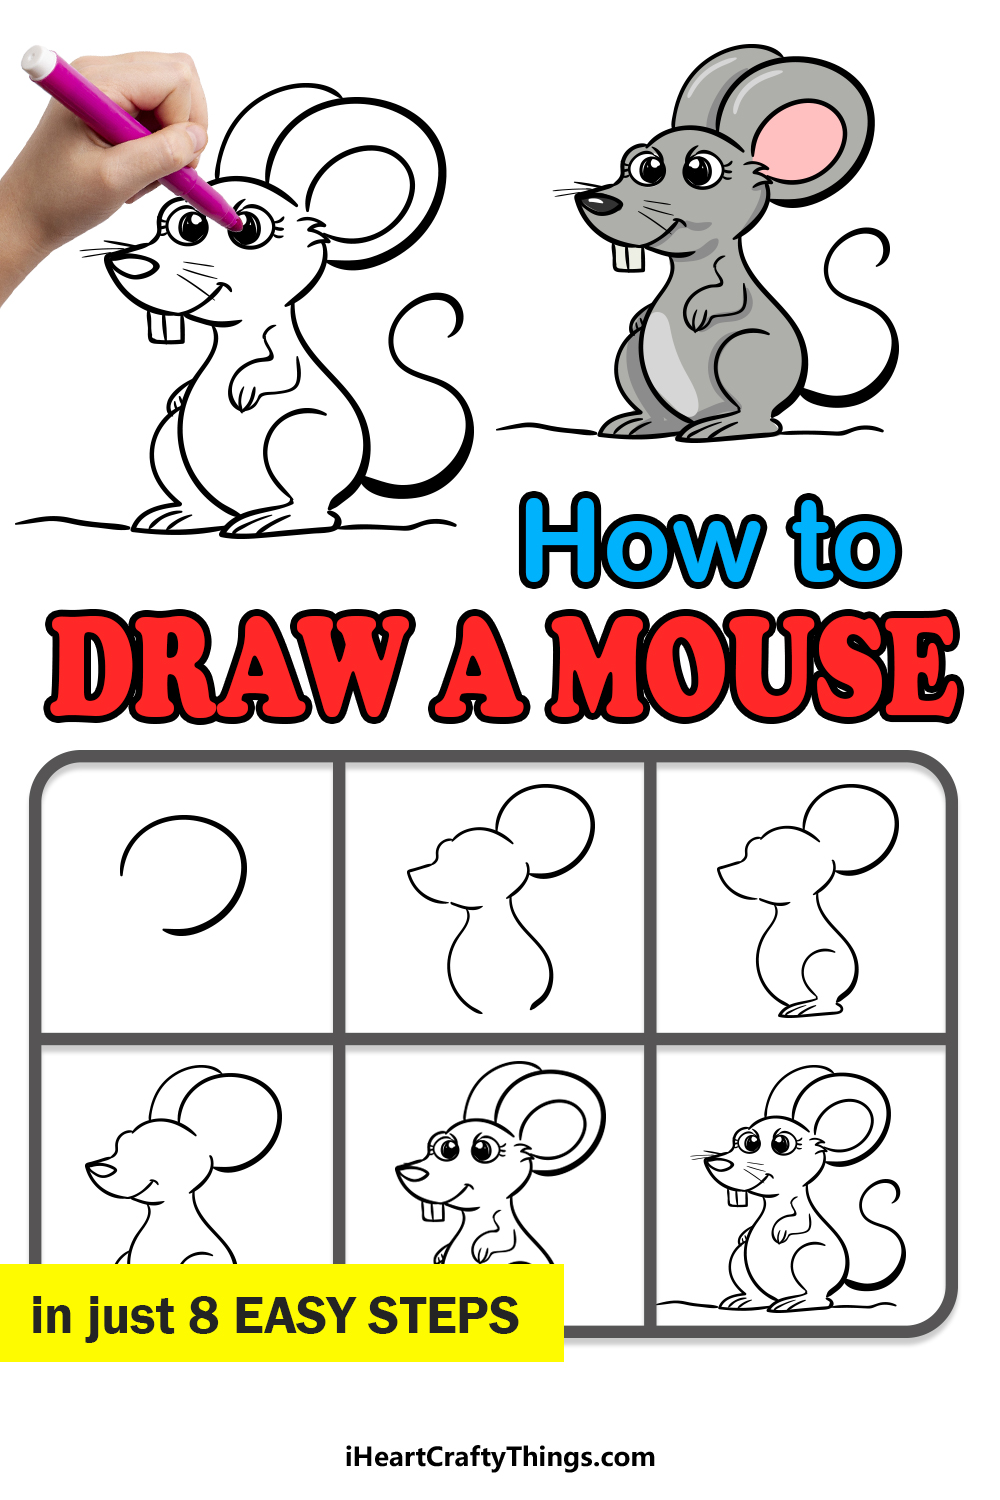 how to draw a mouse in 8 easy steps